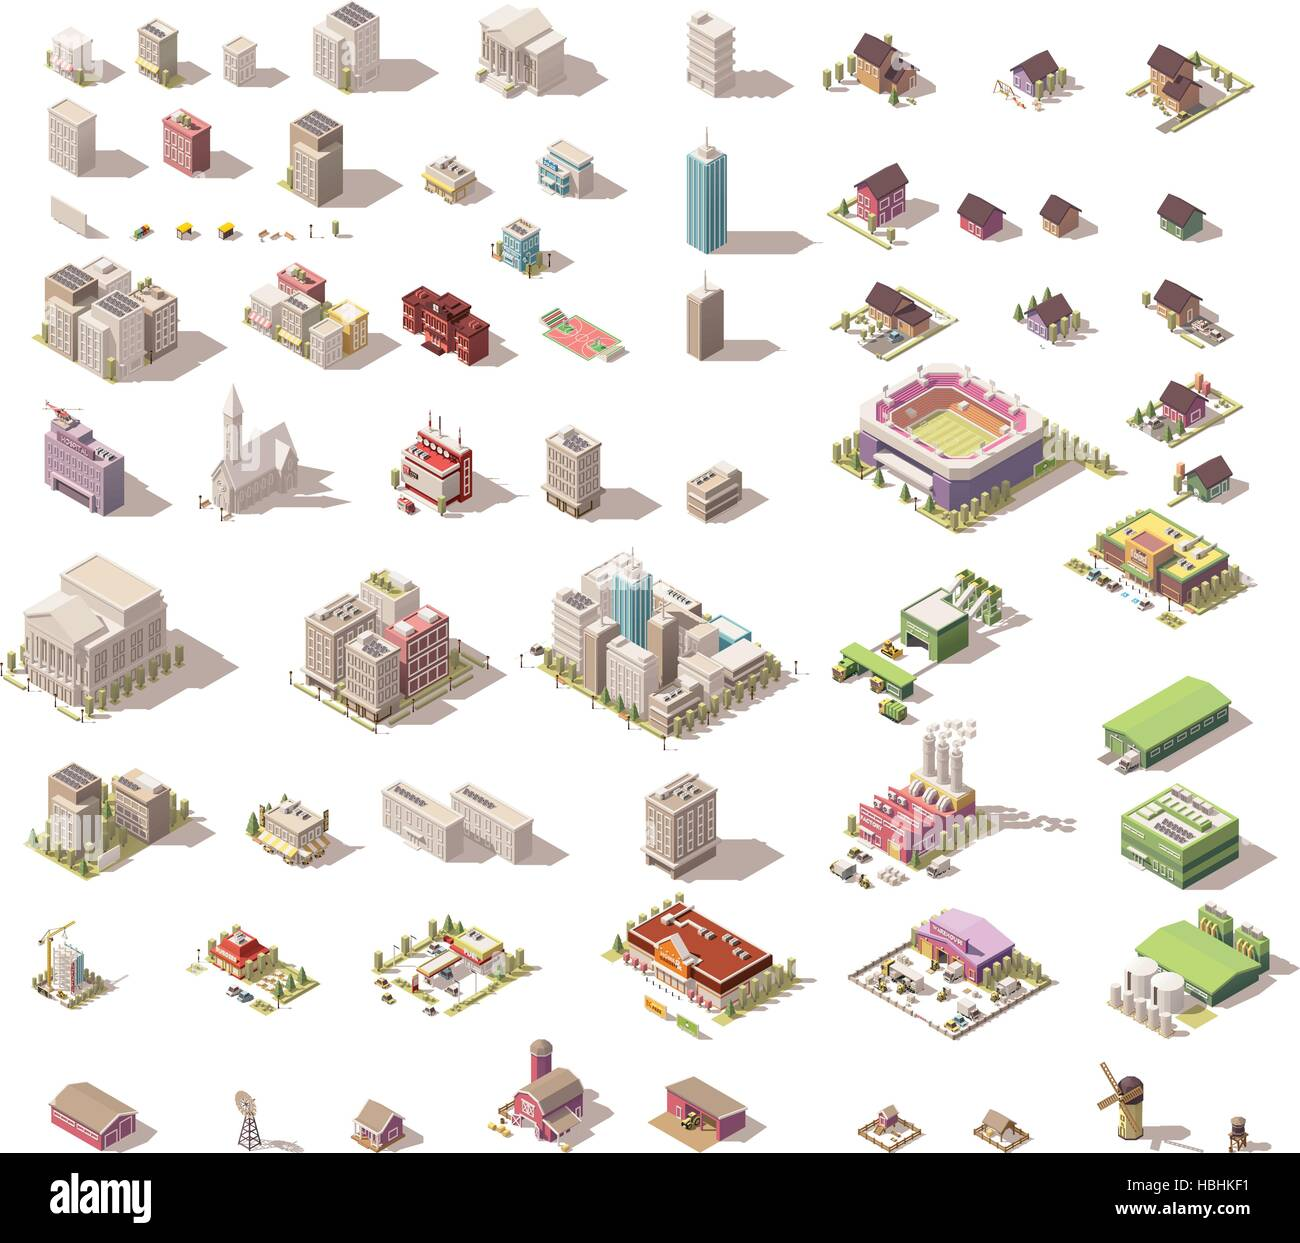 Vector isometric low poly buildings and houses - Stock Vector